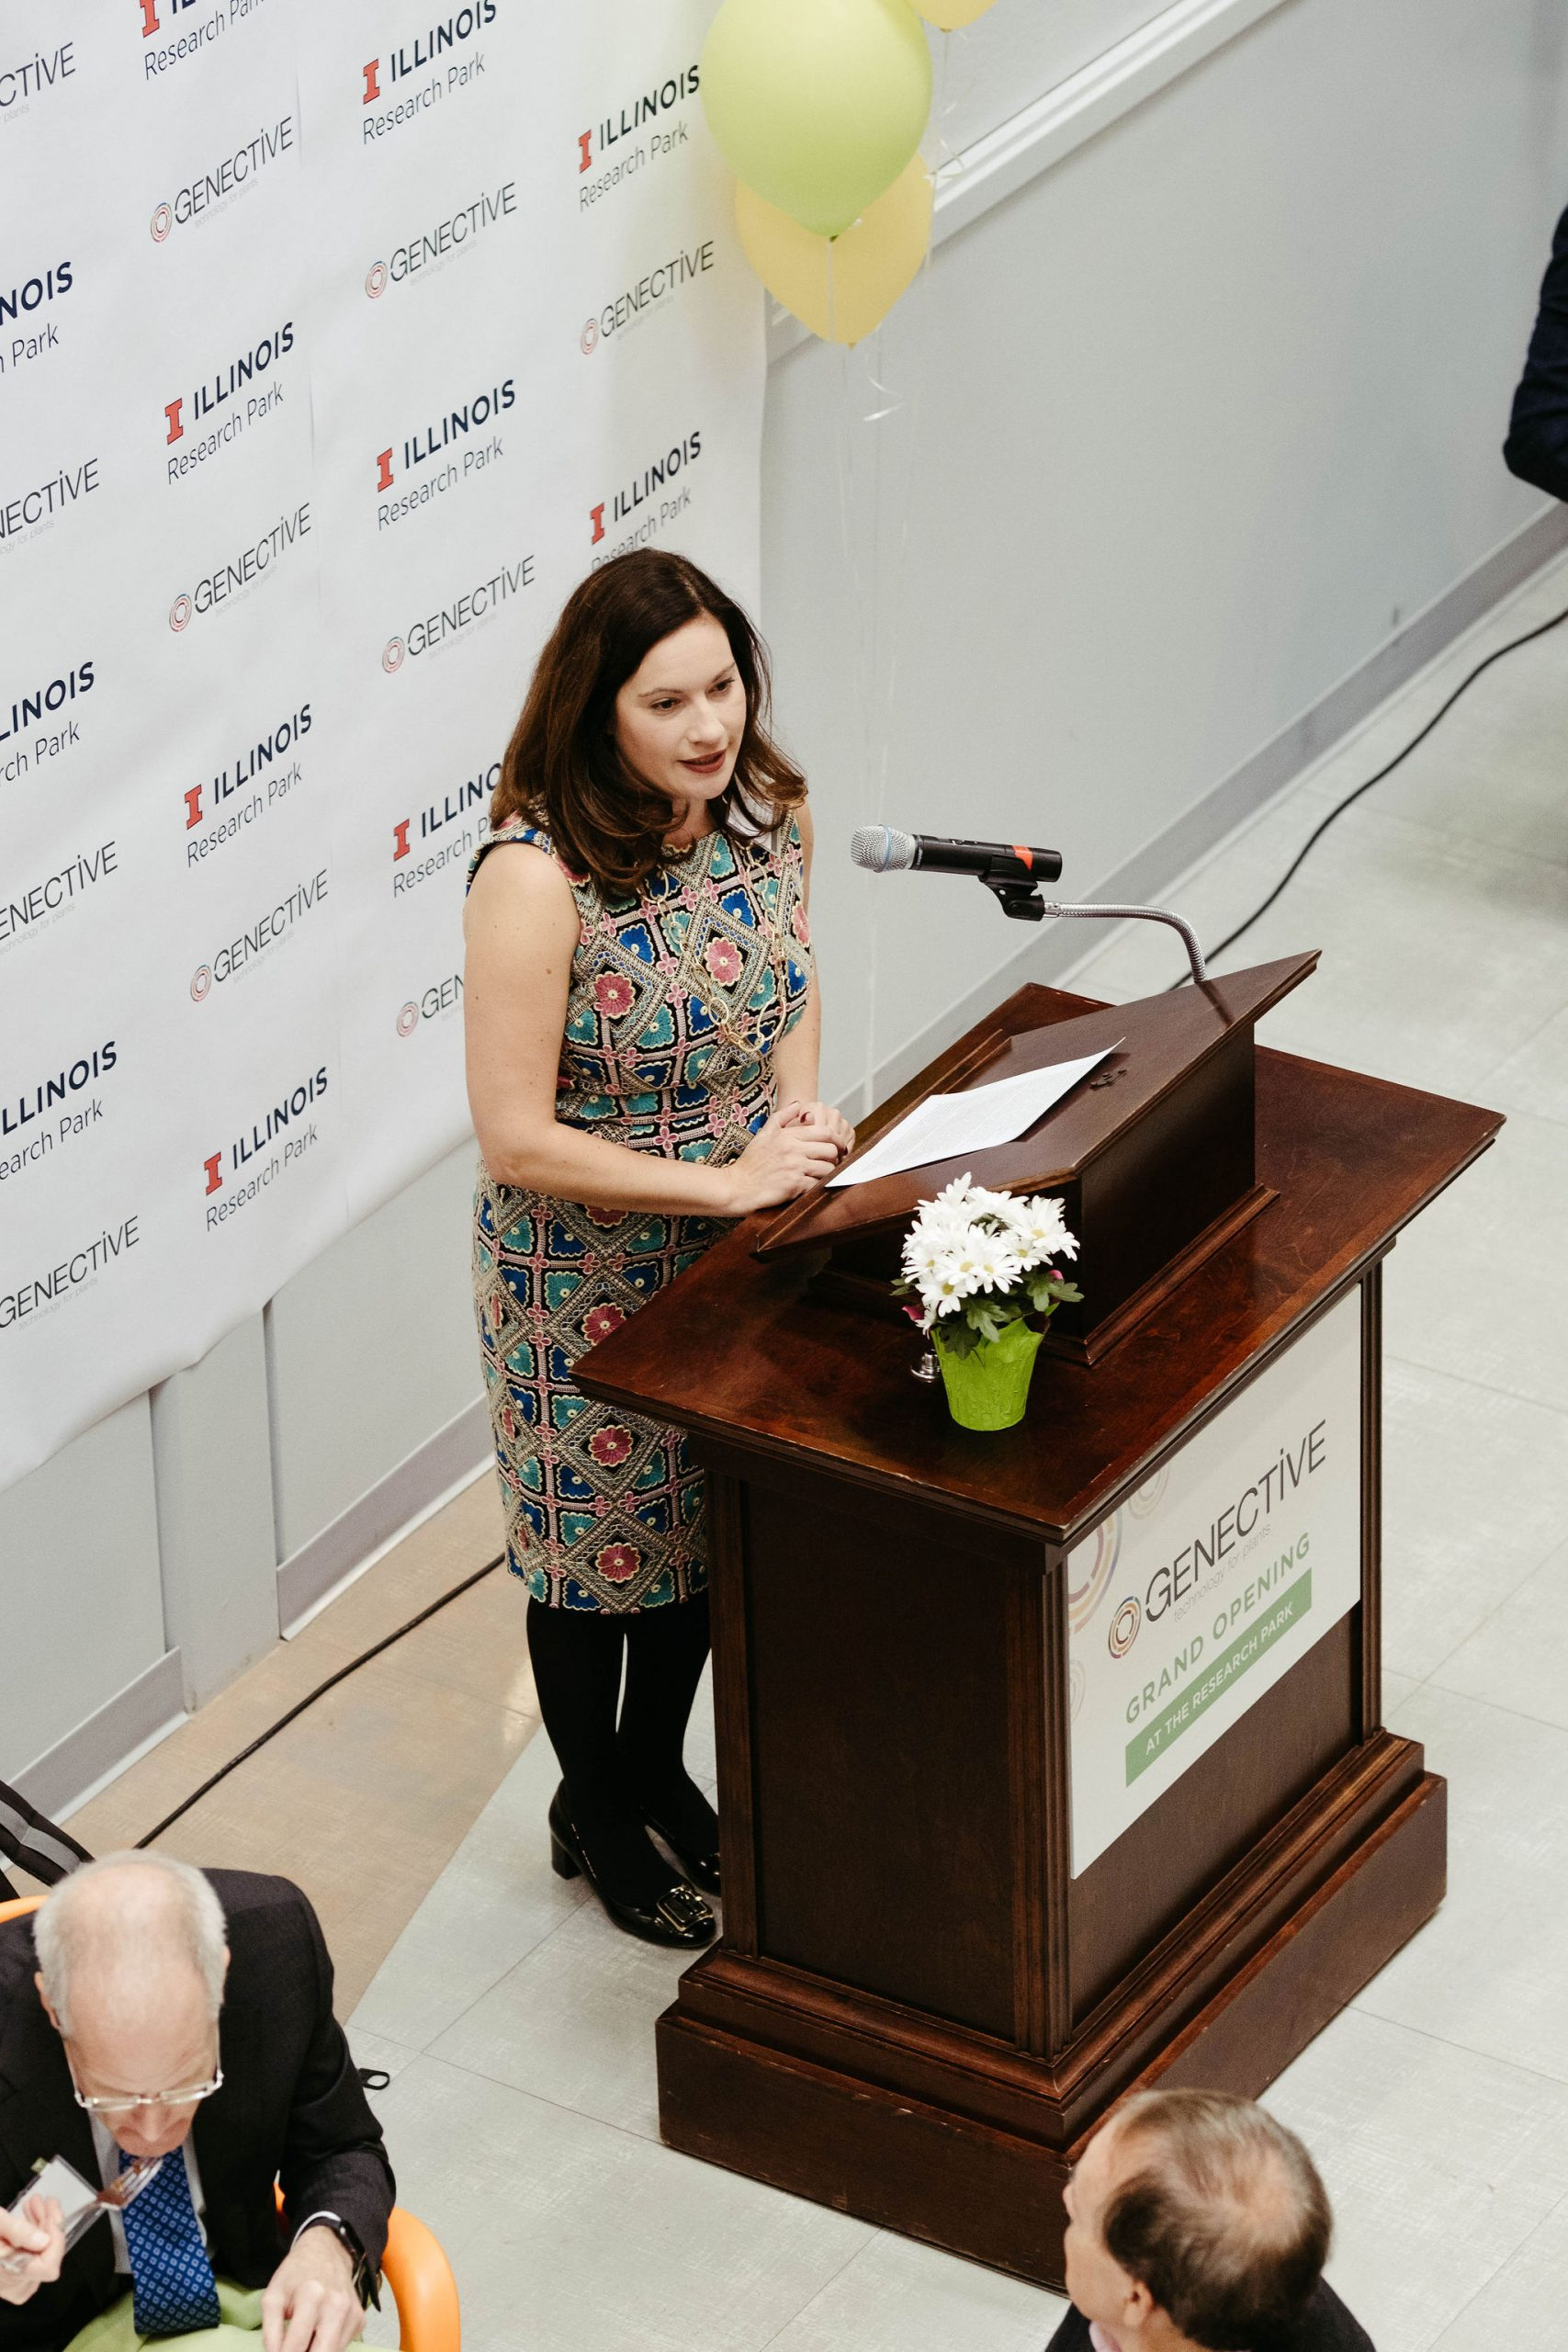 Laura Frerichs gives a talk at the Genective Grand Opening